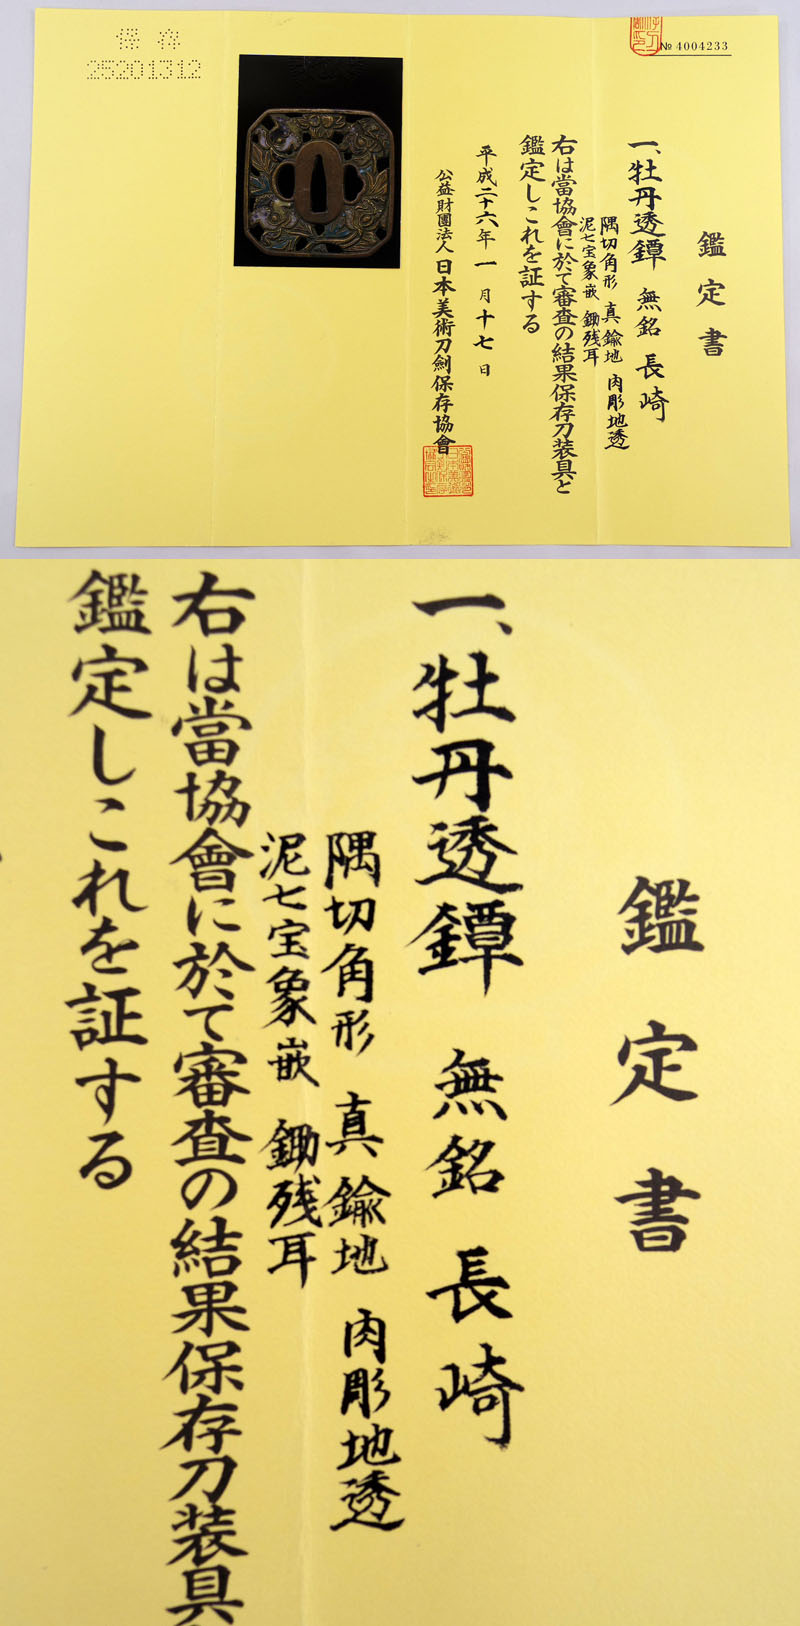 牡丹透鍔 無銘 Nagasaki Picture of Certificate